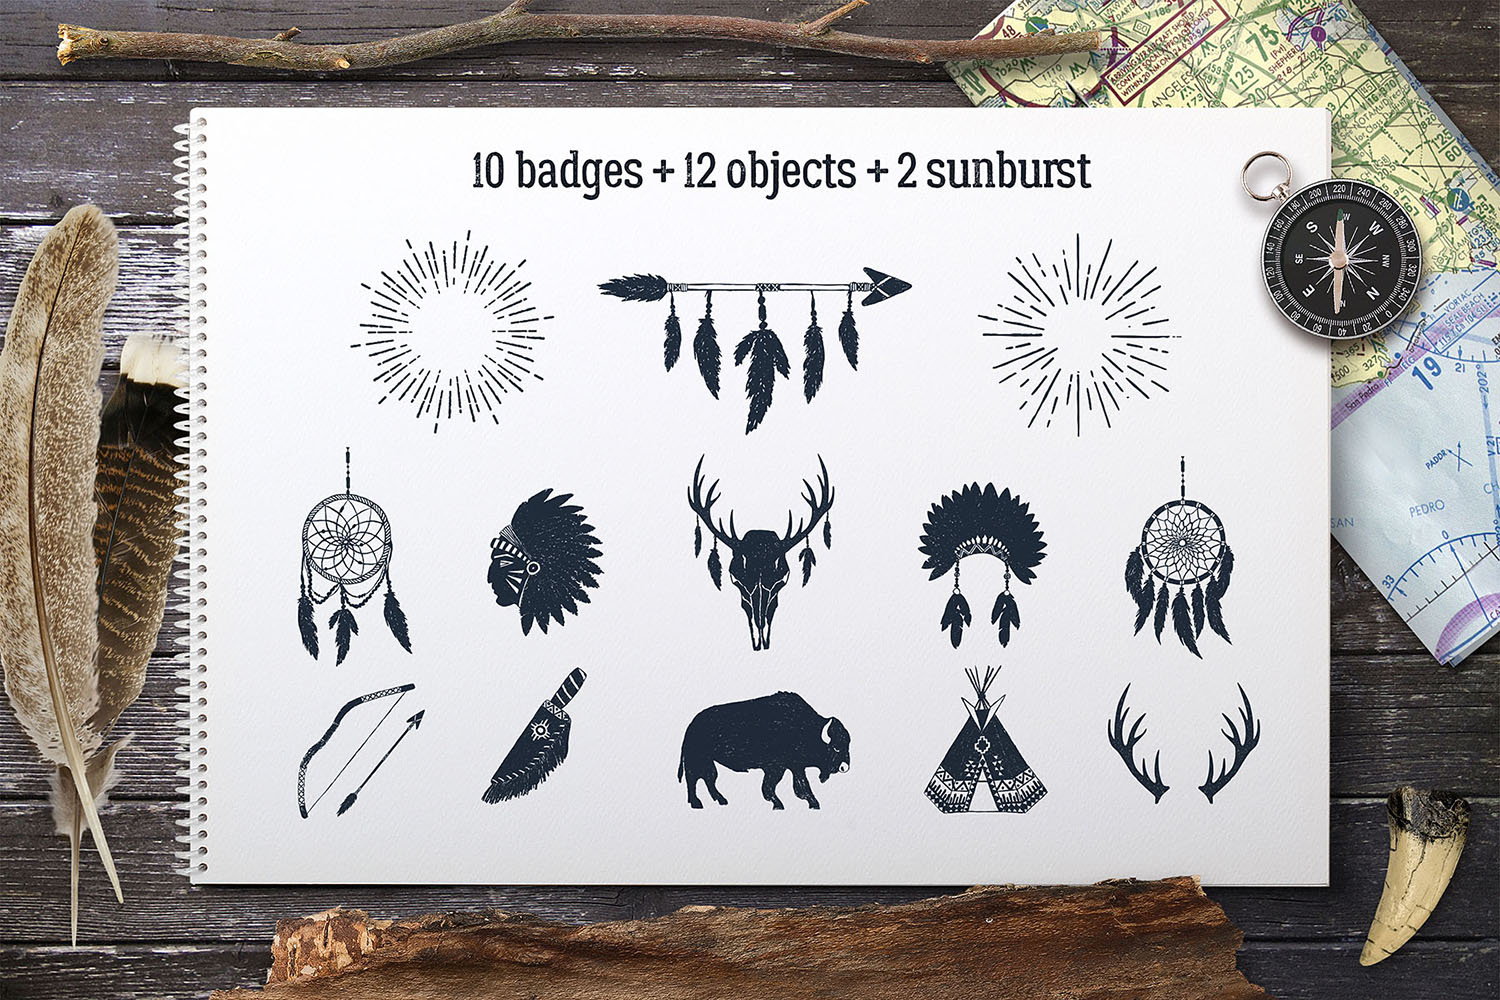 Wild at Heart - Vintage Badges Graphic By Cosmic Store Image 3